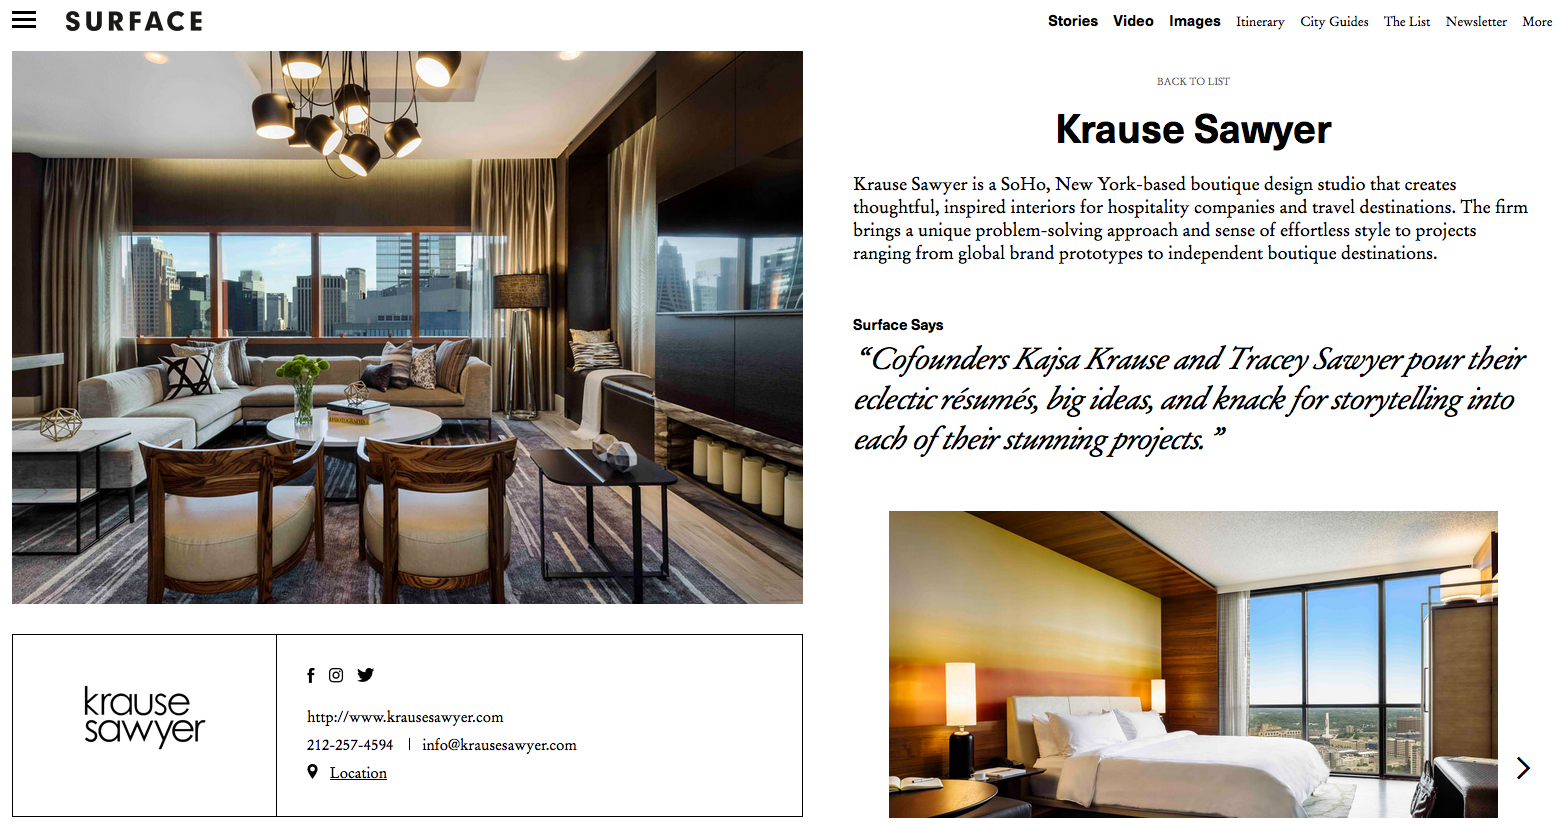 Krause Sawyer Featured As Best Interior Design Agency By Surface Mag |  Krause Sawyer   NYC Interior Design Firm For Luxury Hospitality